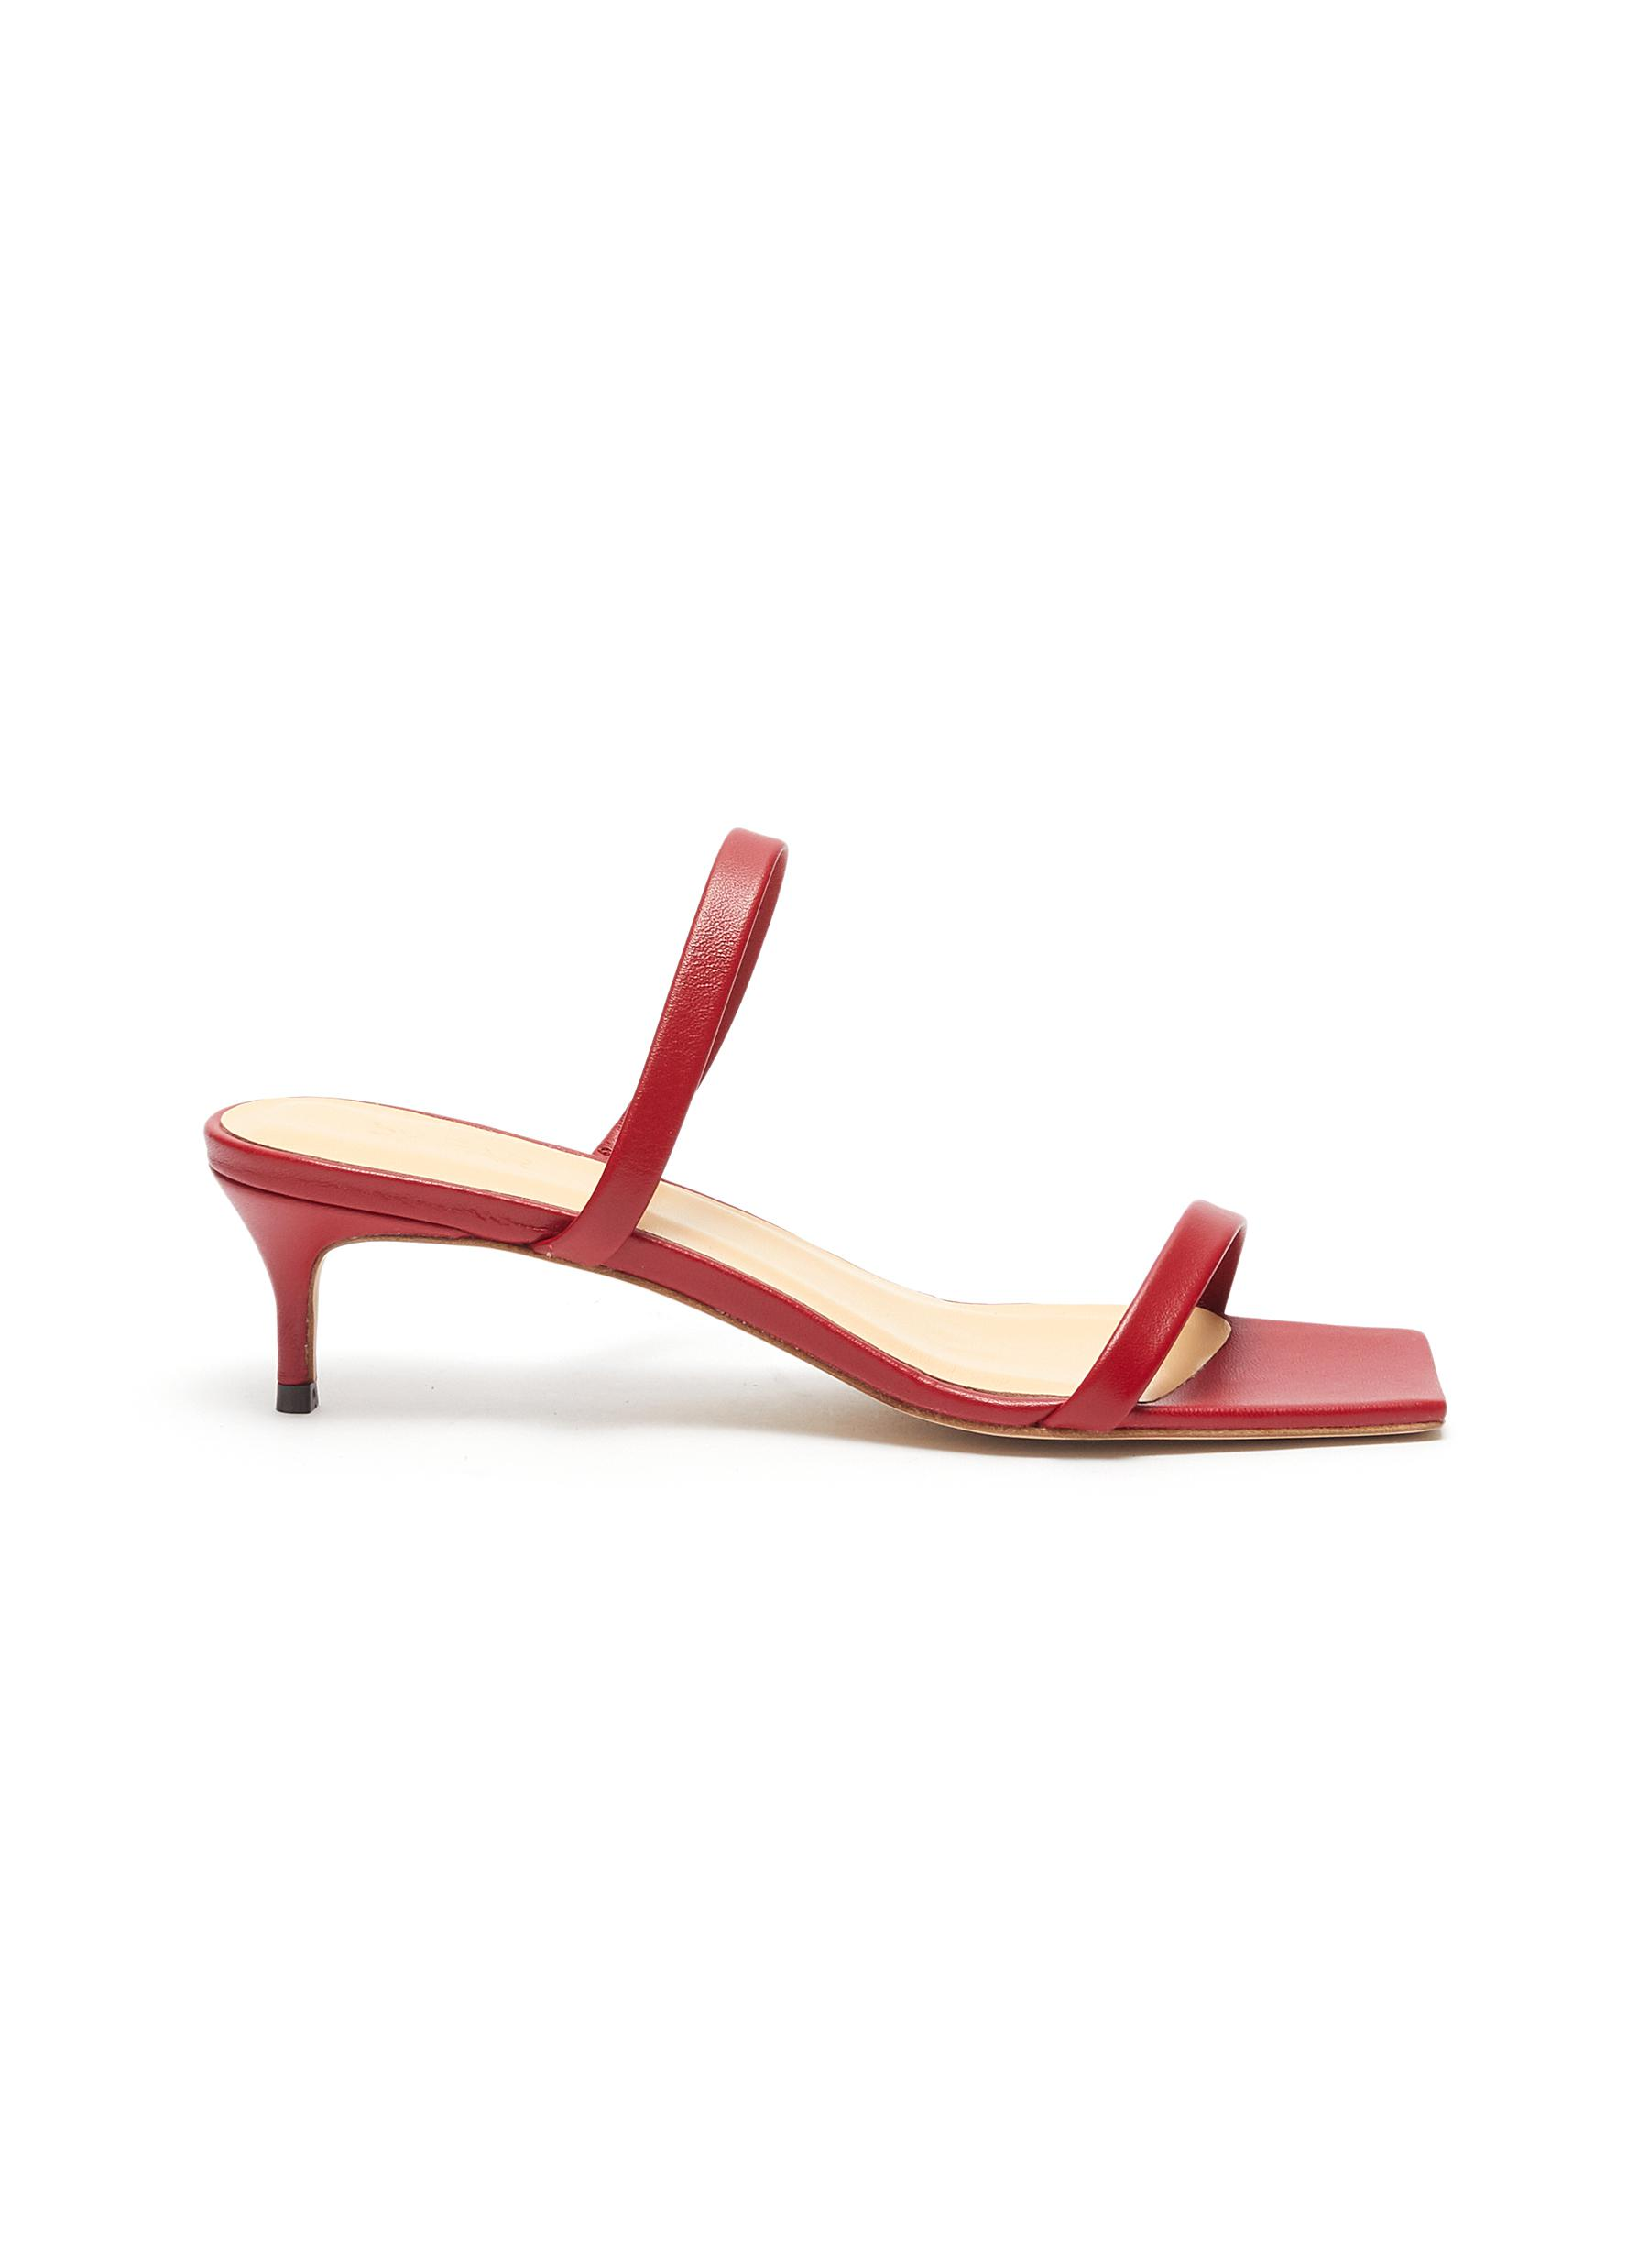 Thalia leather sandals by By Far